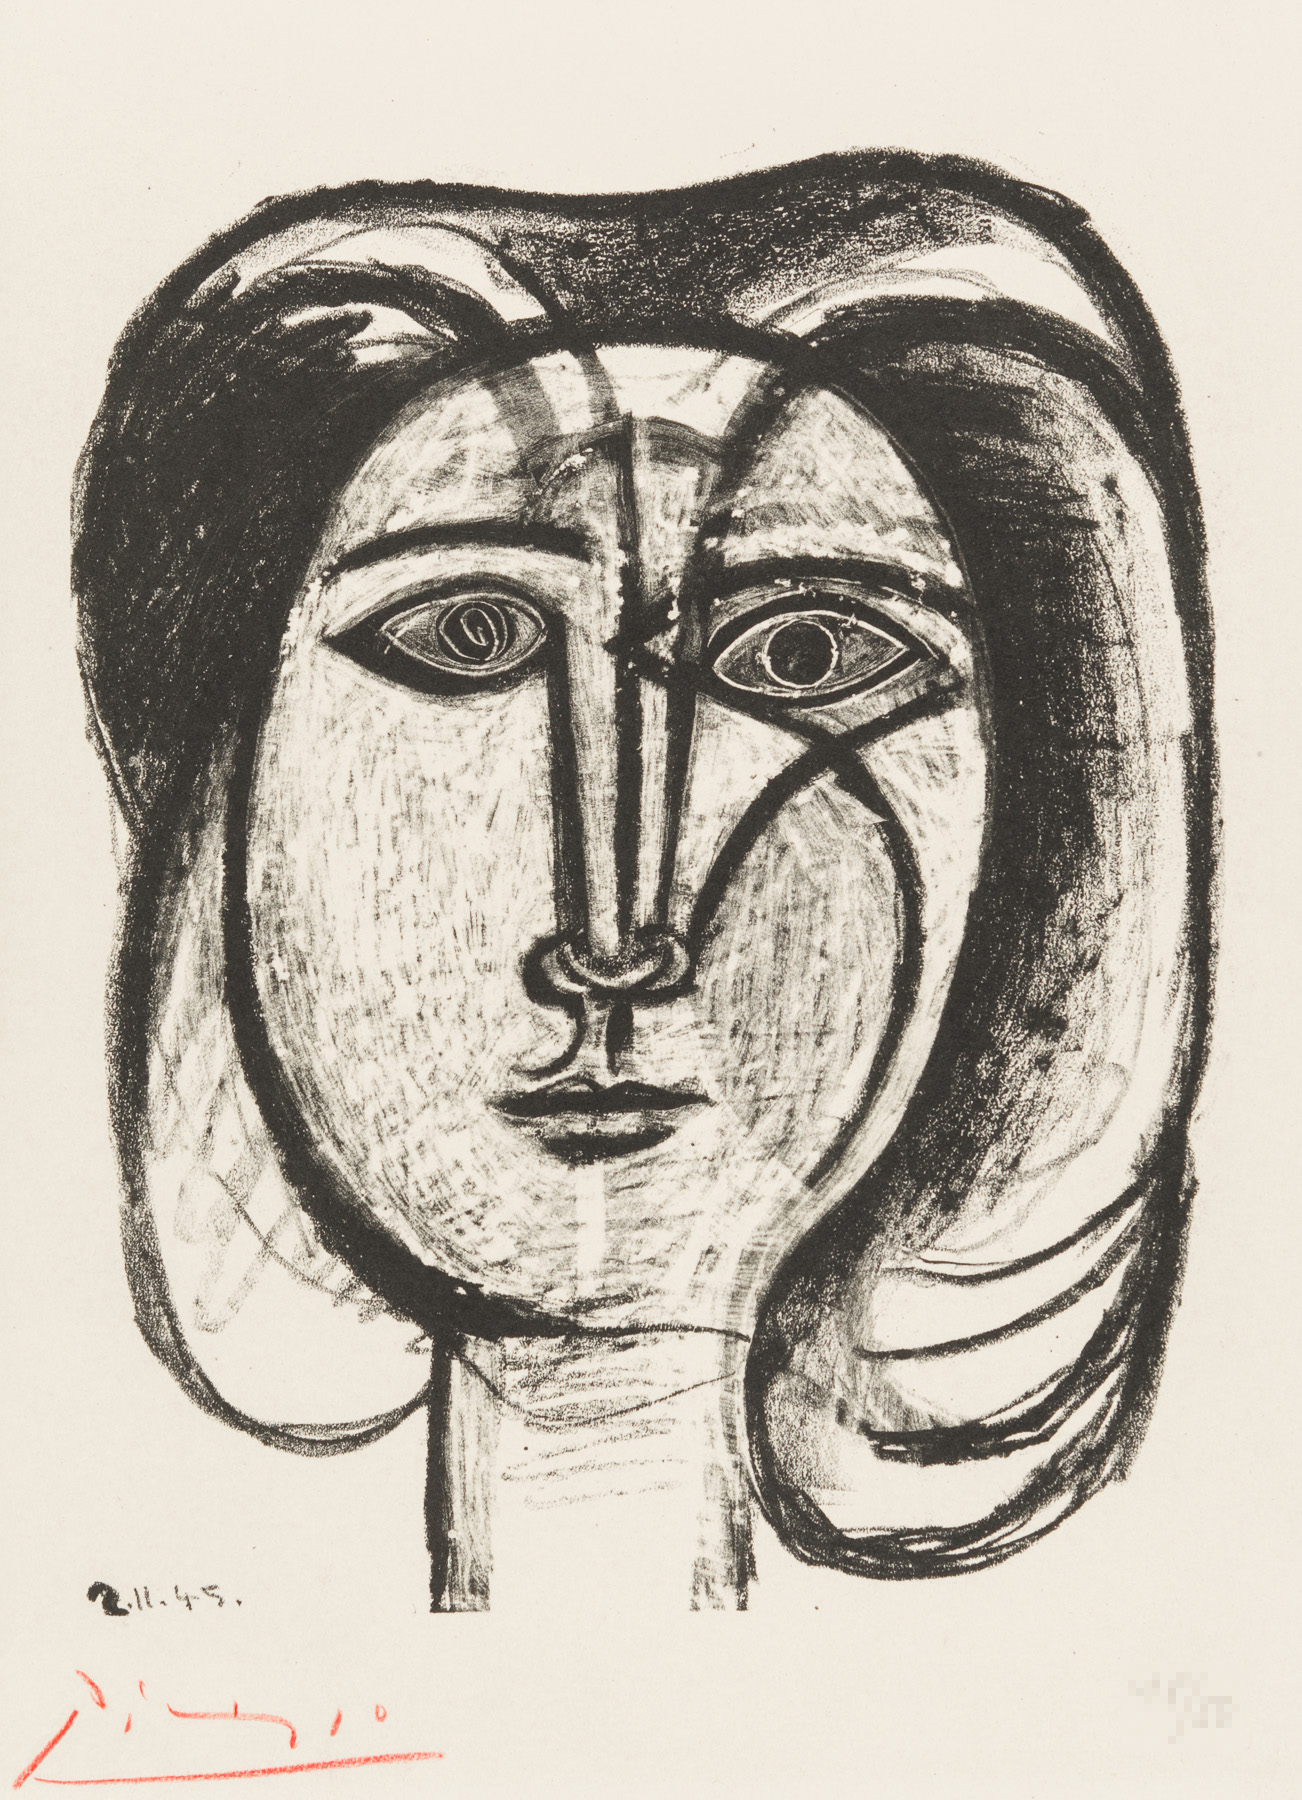 Tete de Femme artwork by Pablo Picasso - art listed for sale on Artplode